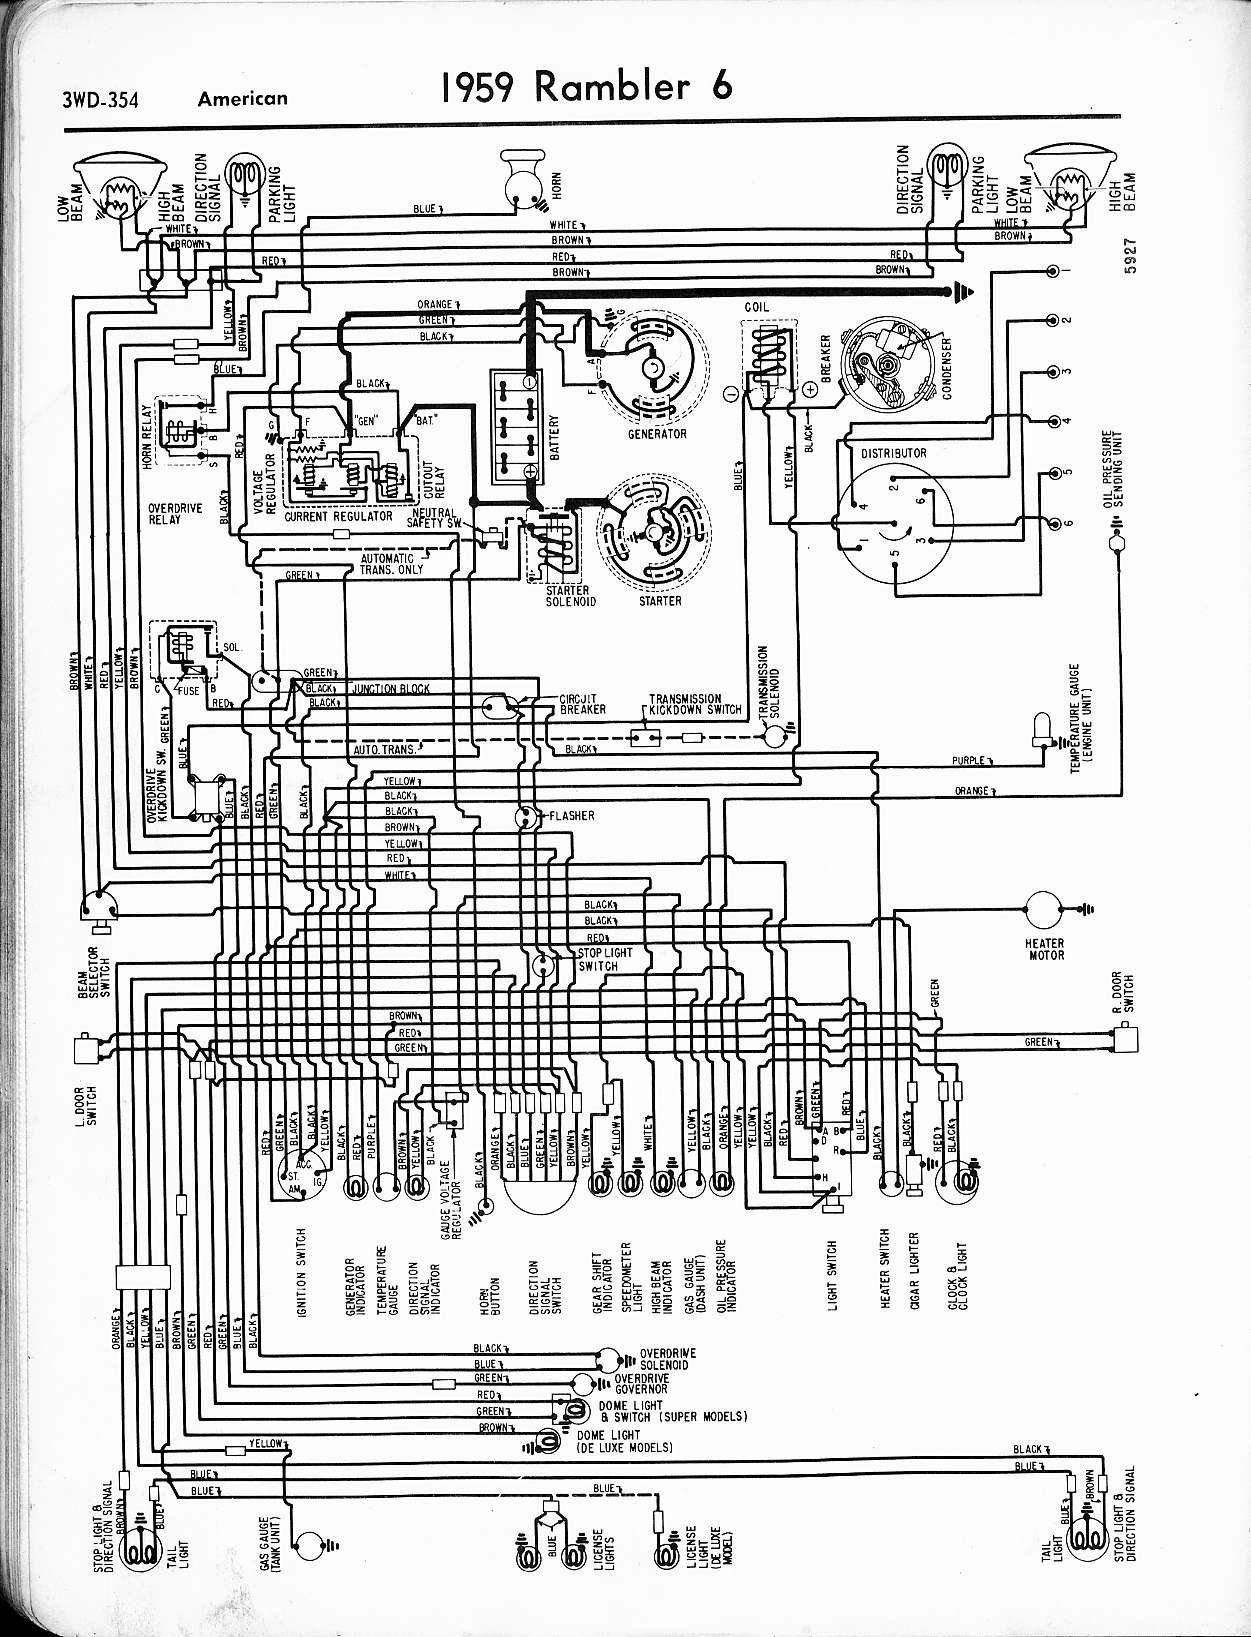 wiring diagram 1968 amc rebel  wiring  free engine image for user manual download